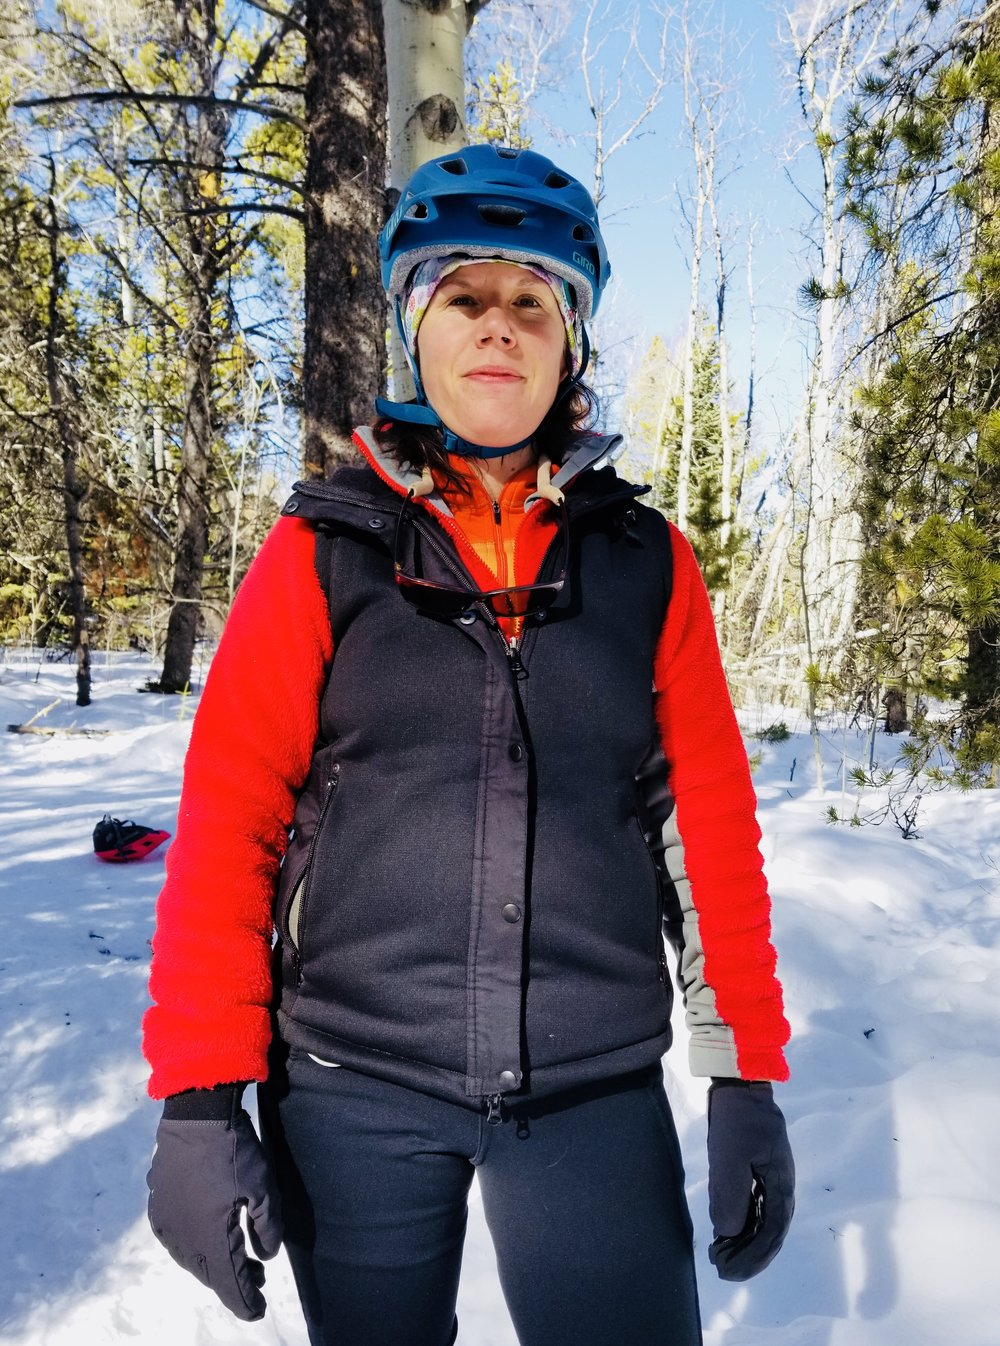 - Can I tell you how much i love the hardface fleece? It brings a startling amount of heat for being a vest, yet doesn't make you hot (?!?!) Science! It's partially the wind block in the fleece. I wear it for product testing. Here's me taking it on a wintery snow bike ride.